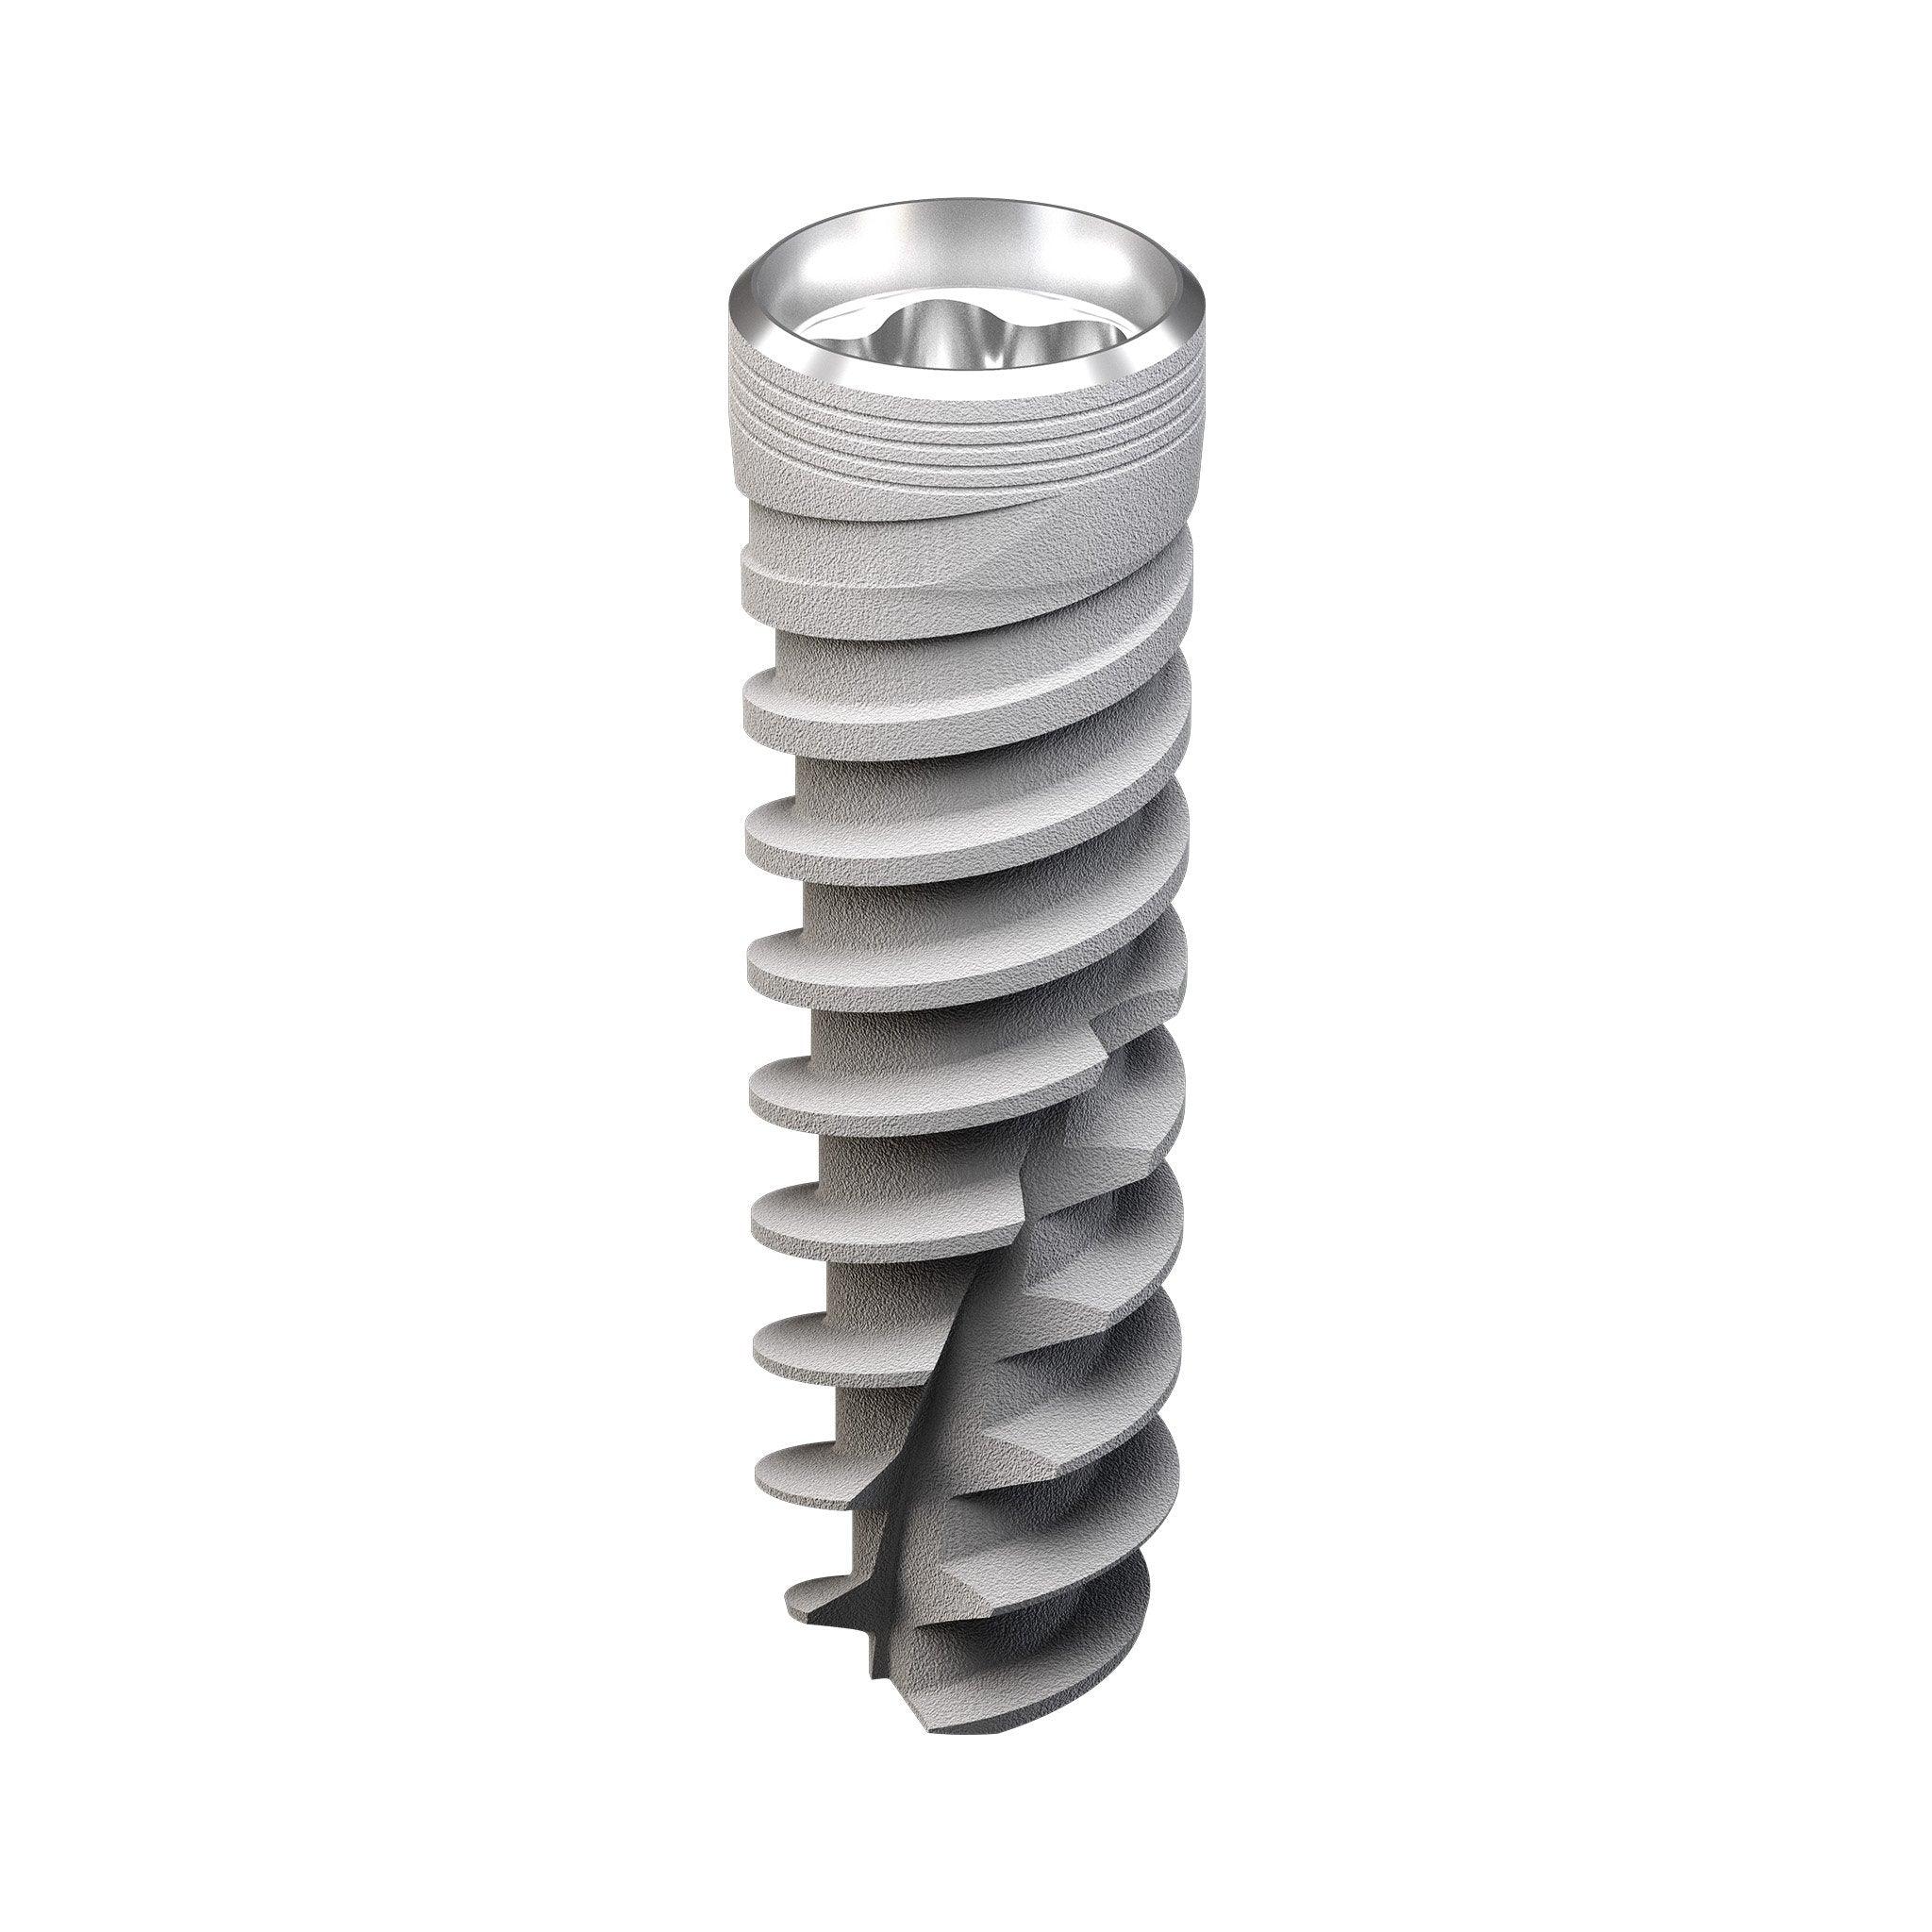 Prima Plus™ Implant SD Ø 3.5 x 15.0mm | K3